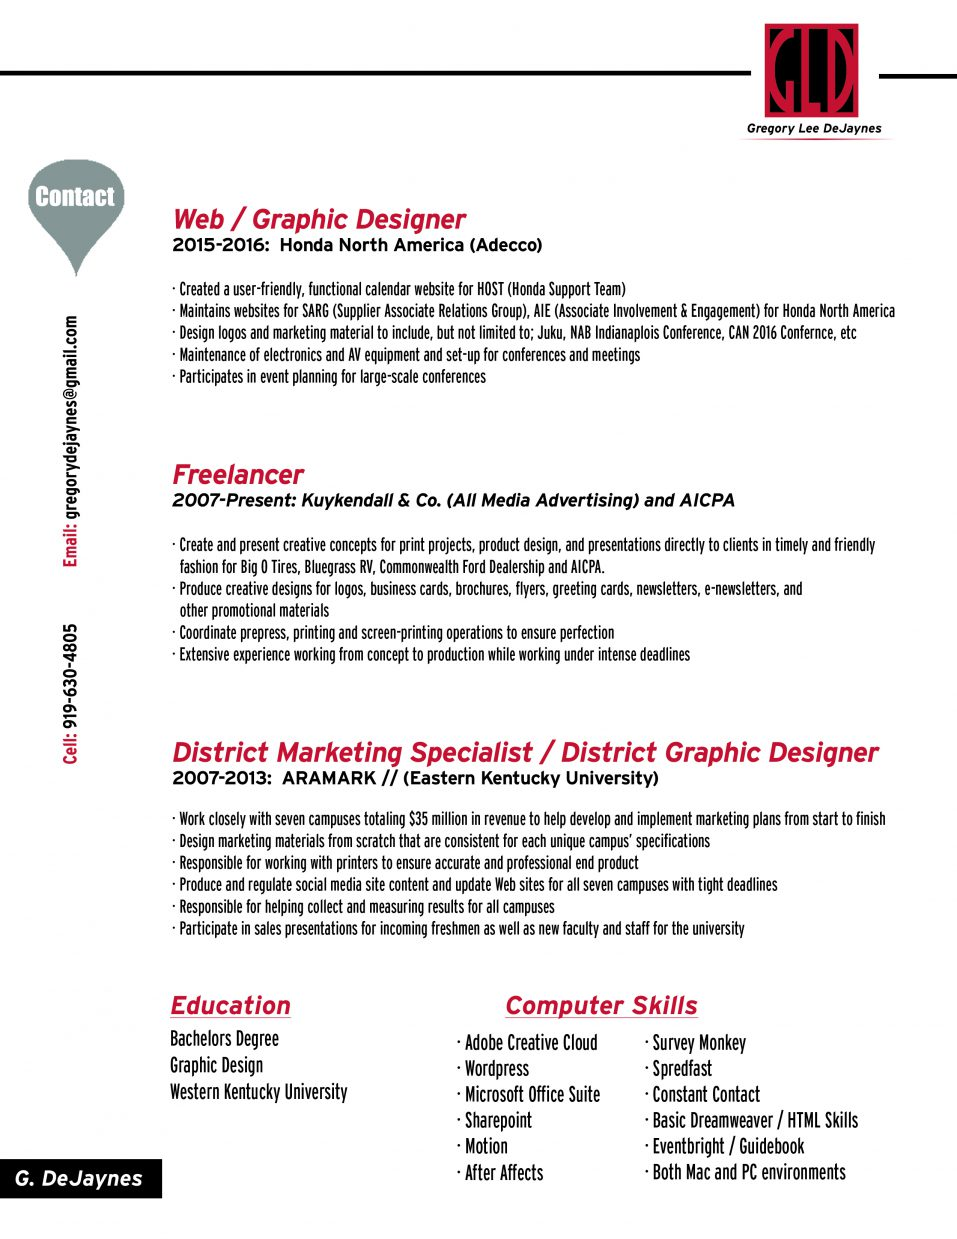 Resume | Gregory Lee DeJaynes